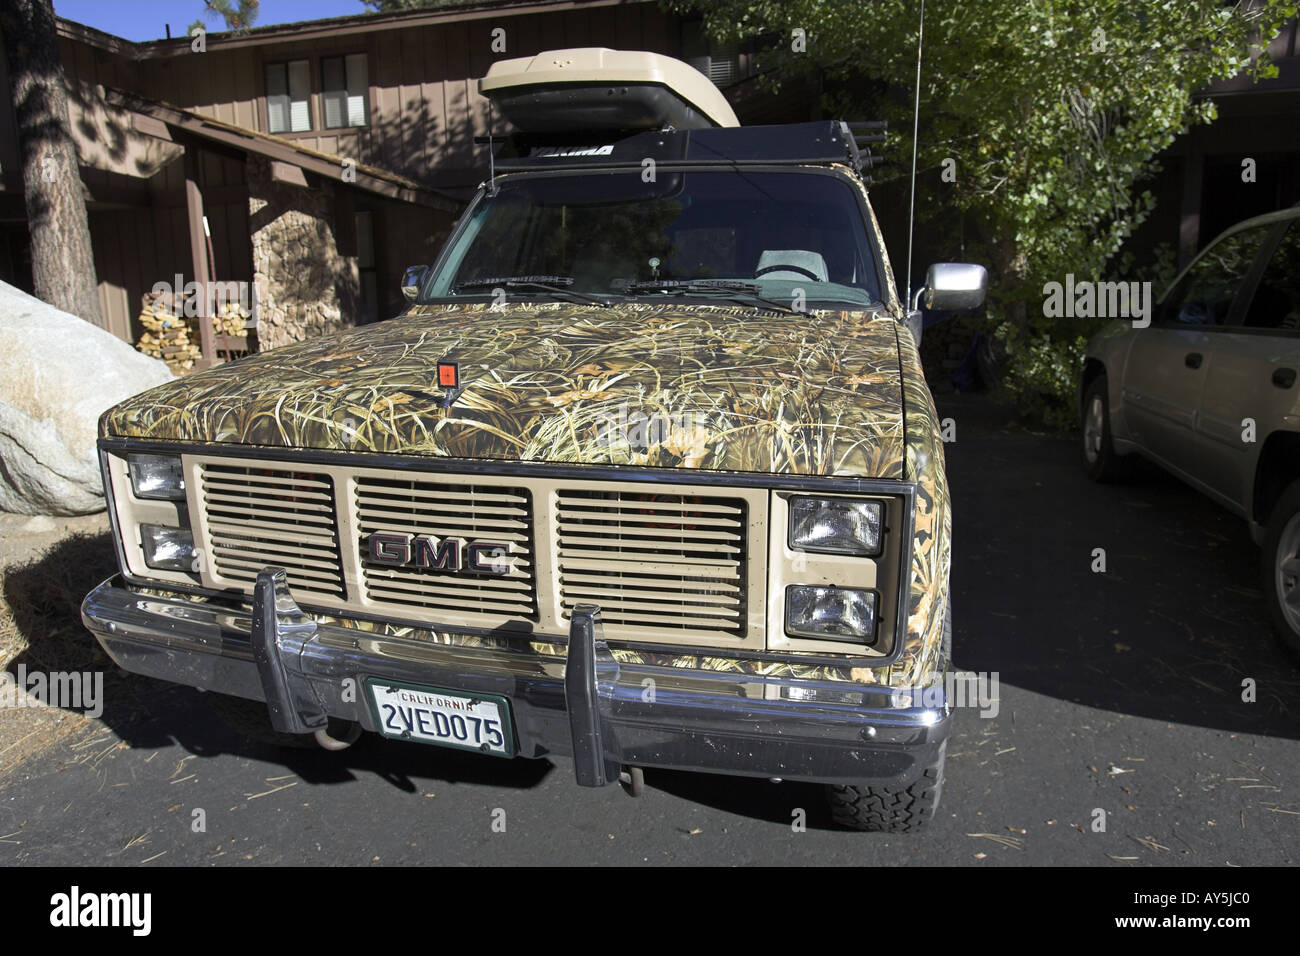 hight resolution of gmc sierra classic 2500 suburban 4wd 1987 on a 3 4 ton chassis camouflaged with camo extreme max 4 hd